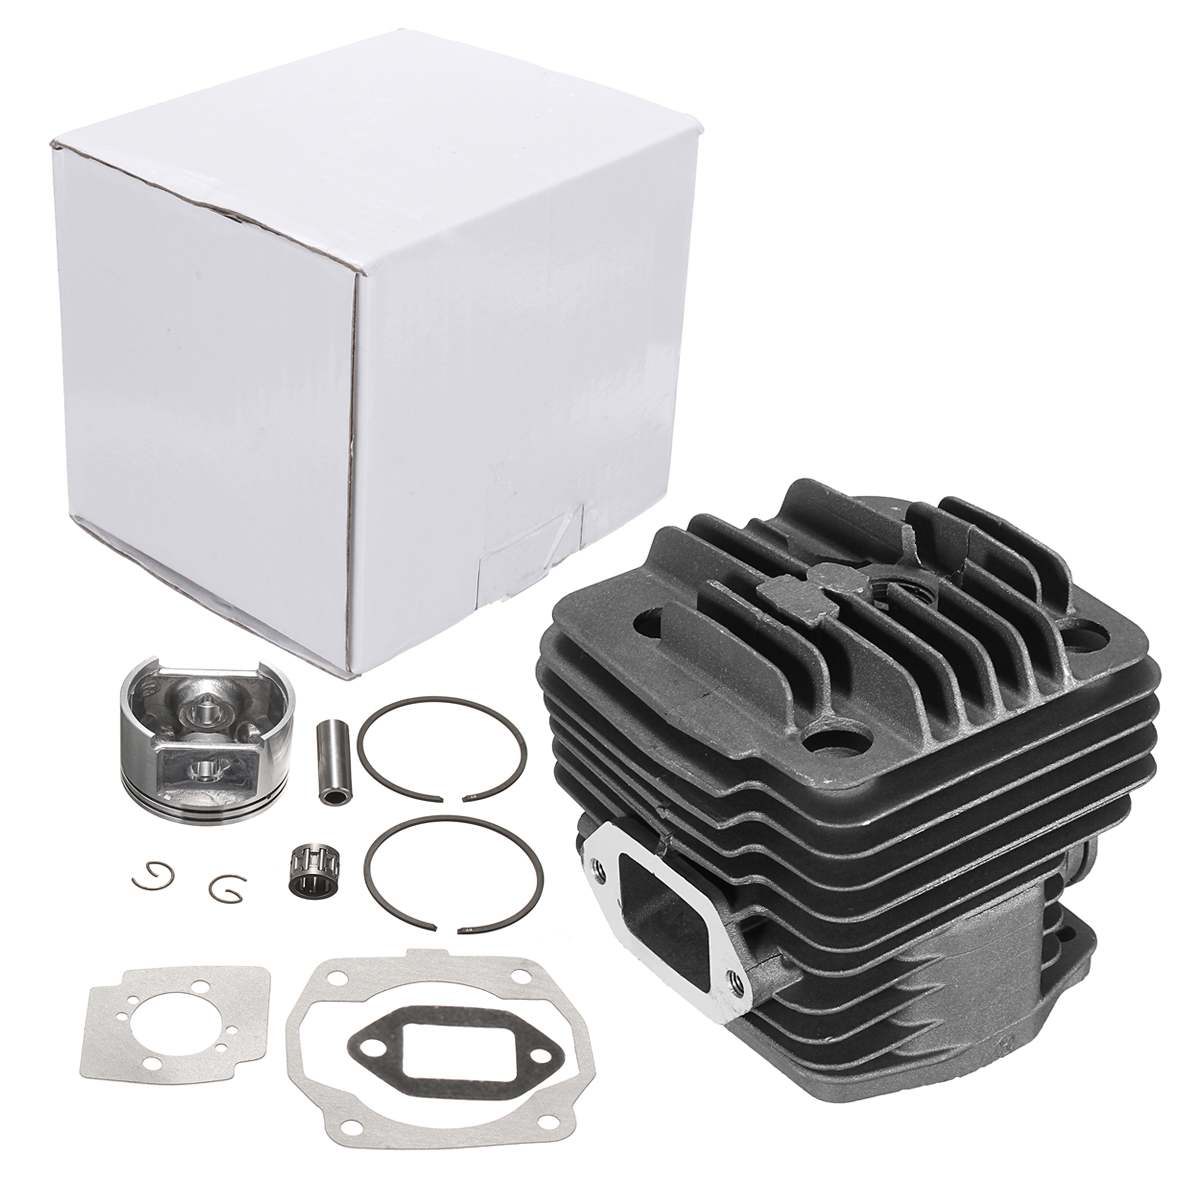 For STIHL TS400 4223 0201200   Cylinder Piston Gasket Bearings Top End Rebuild Kit Chainsaws